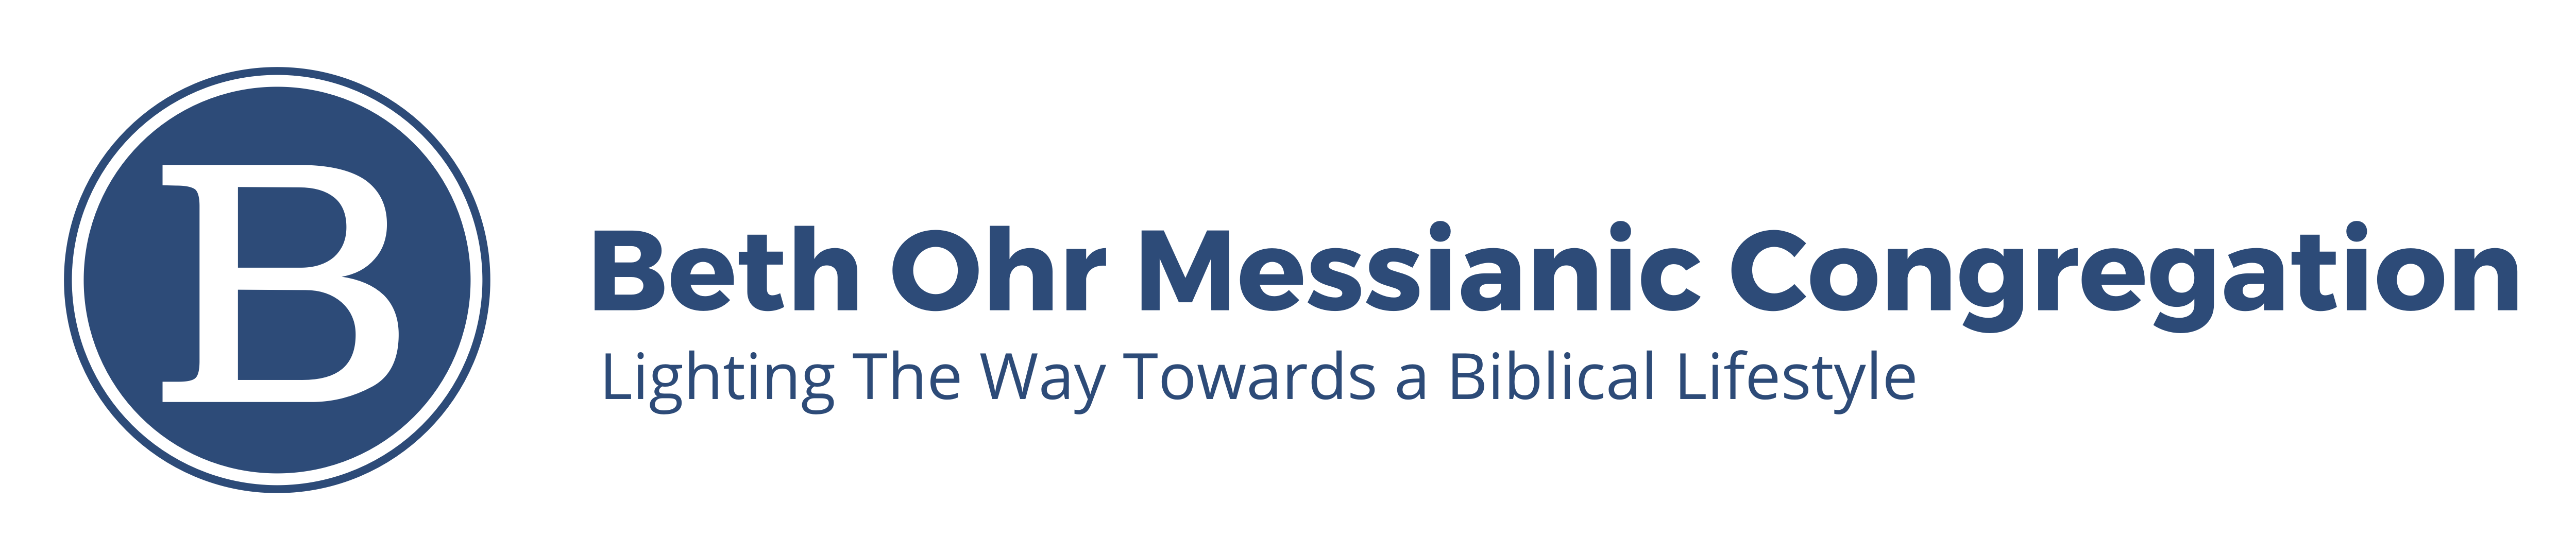 Beth Ohr Messianic Congregation